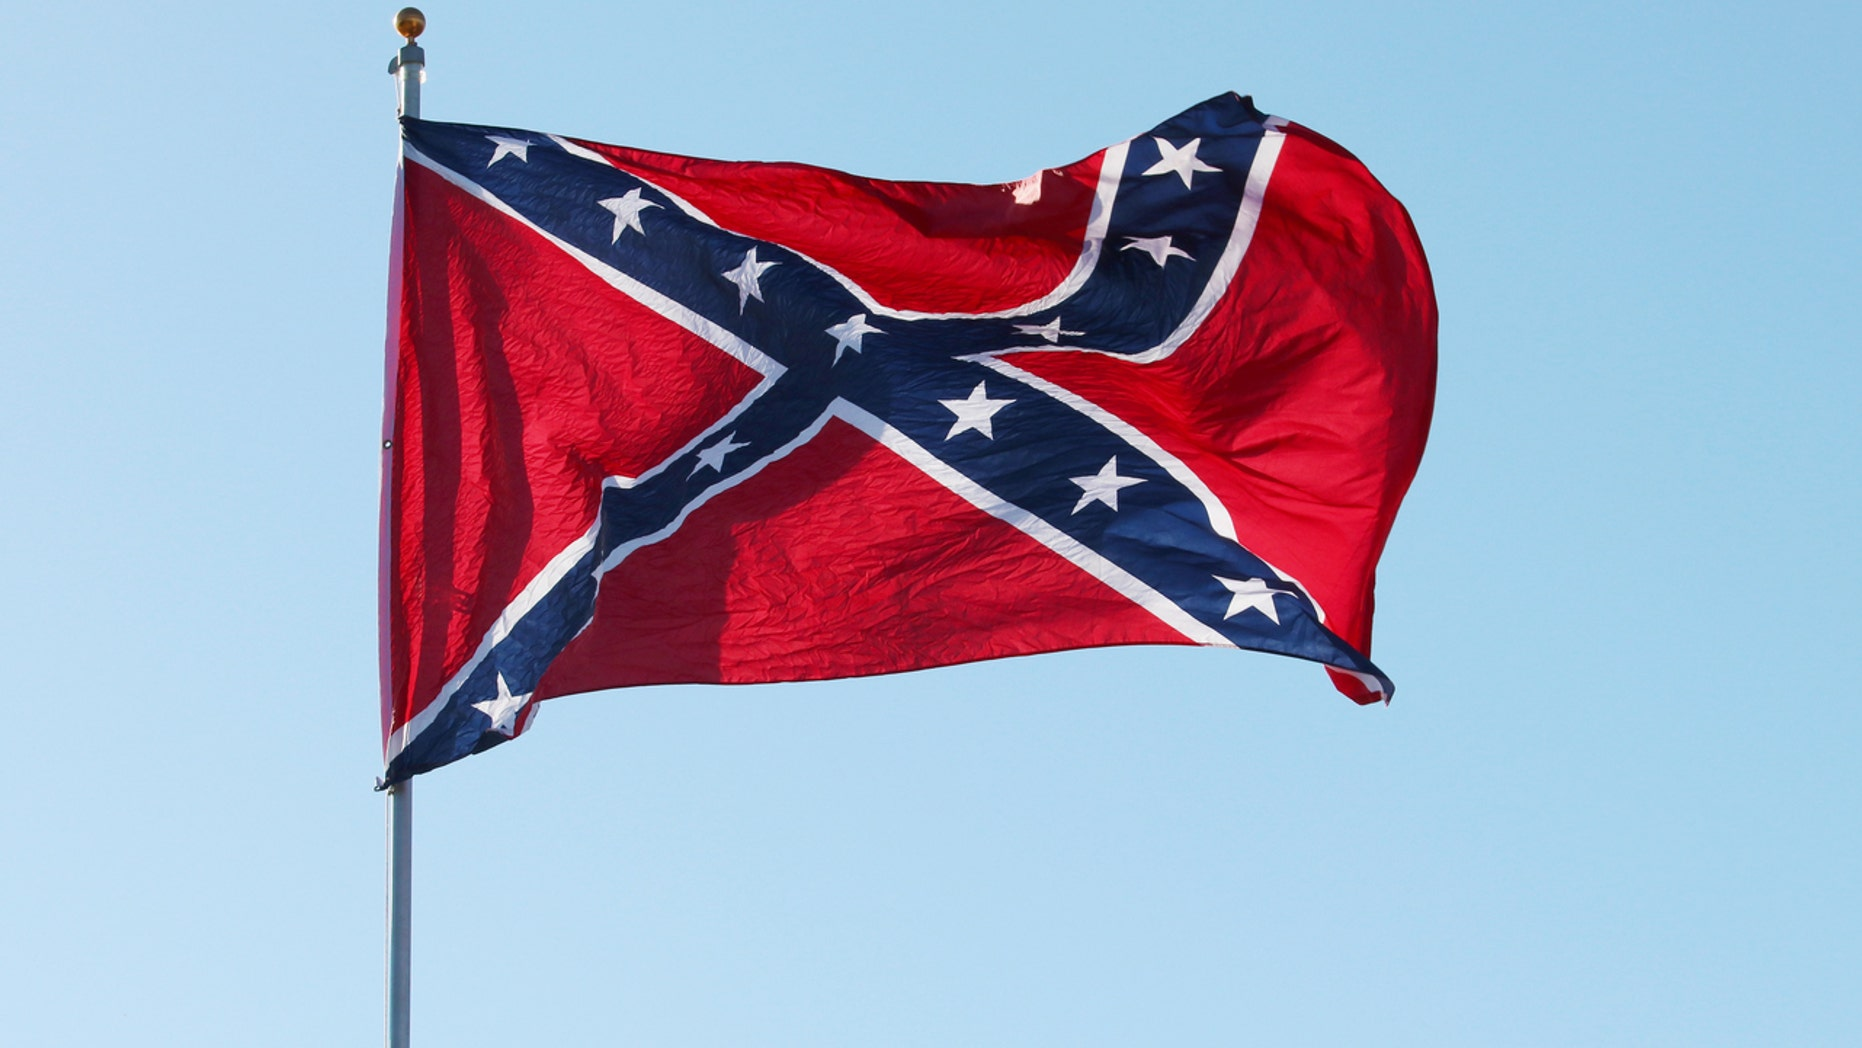 A South Carolina ice cream shop claims they have a permit allowing them to dig up the flag.